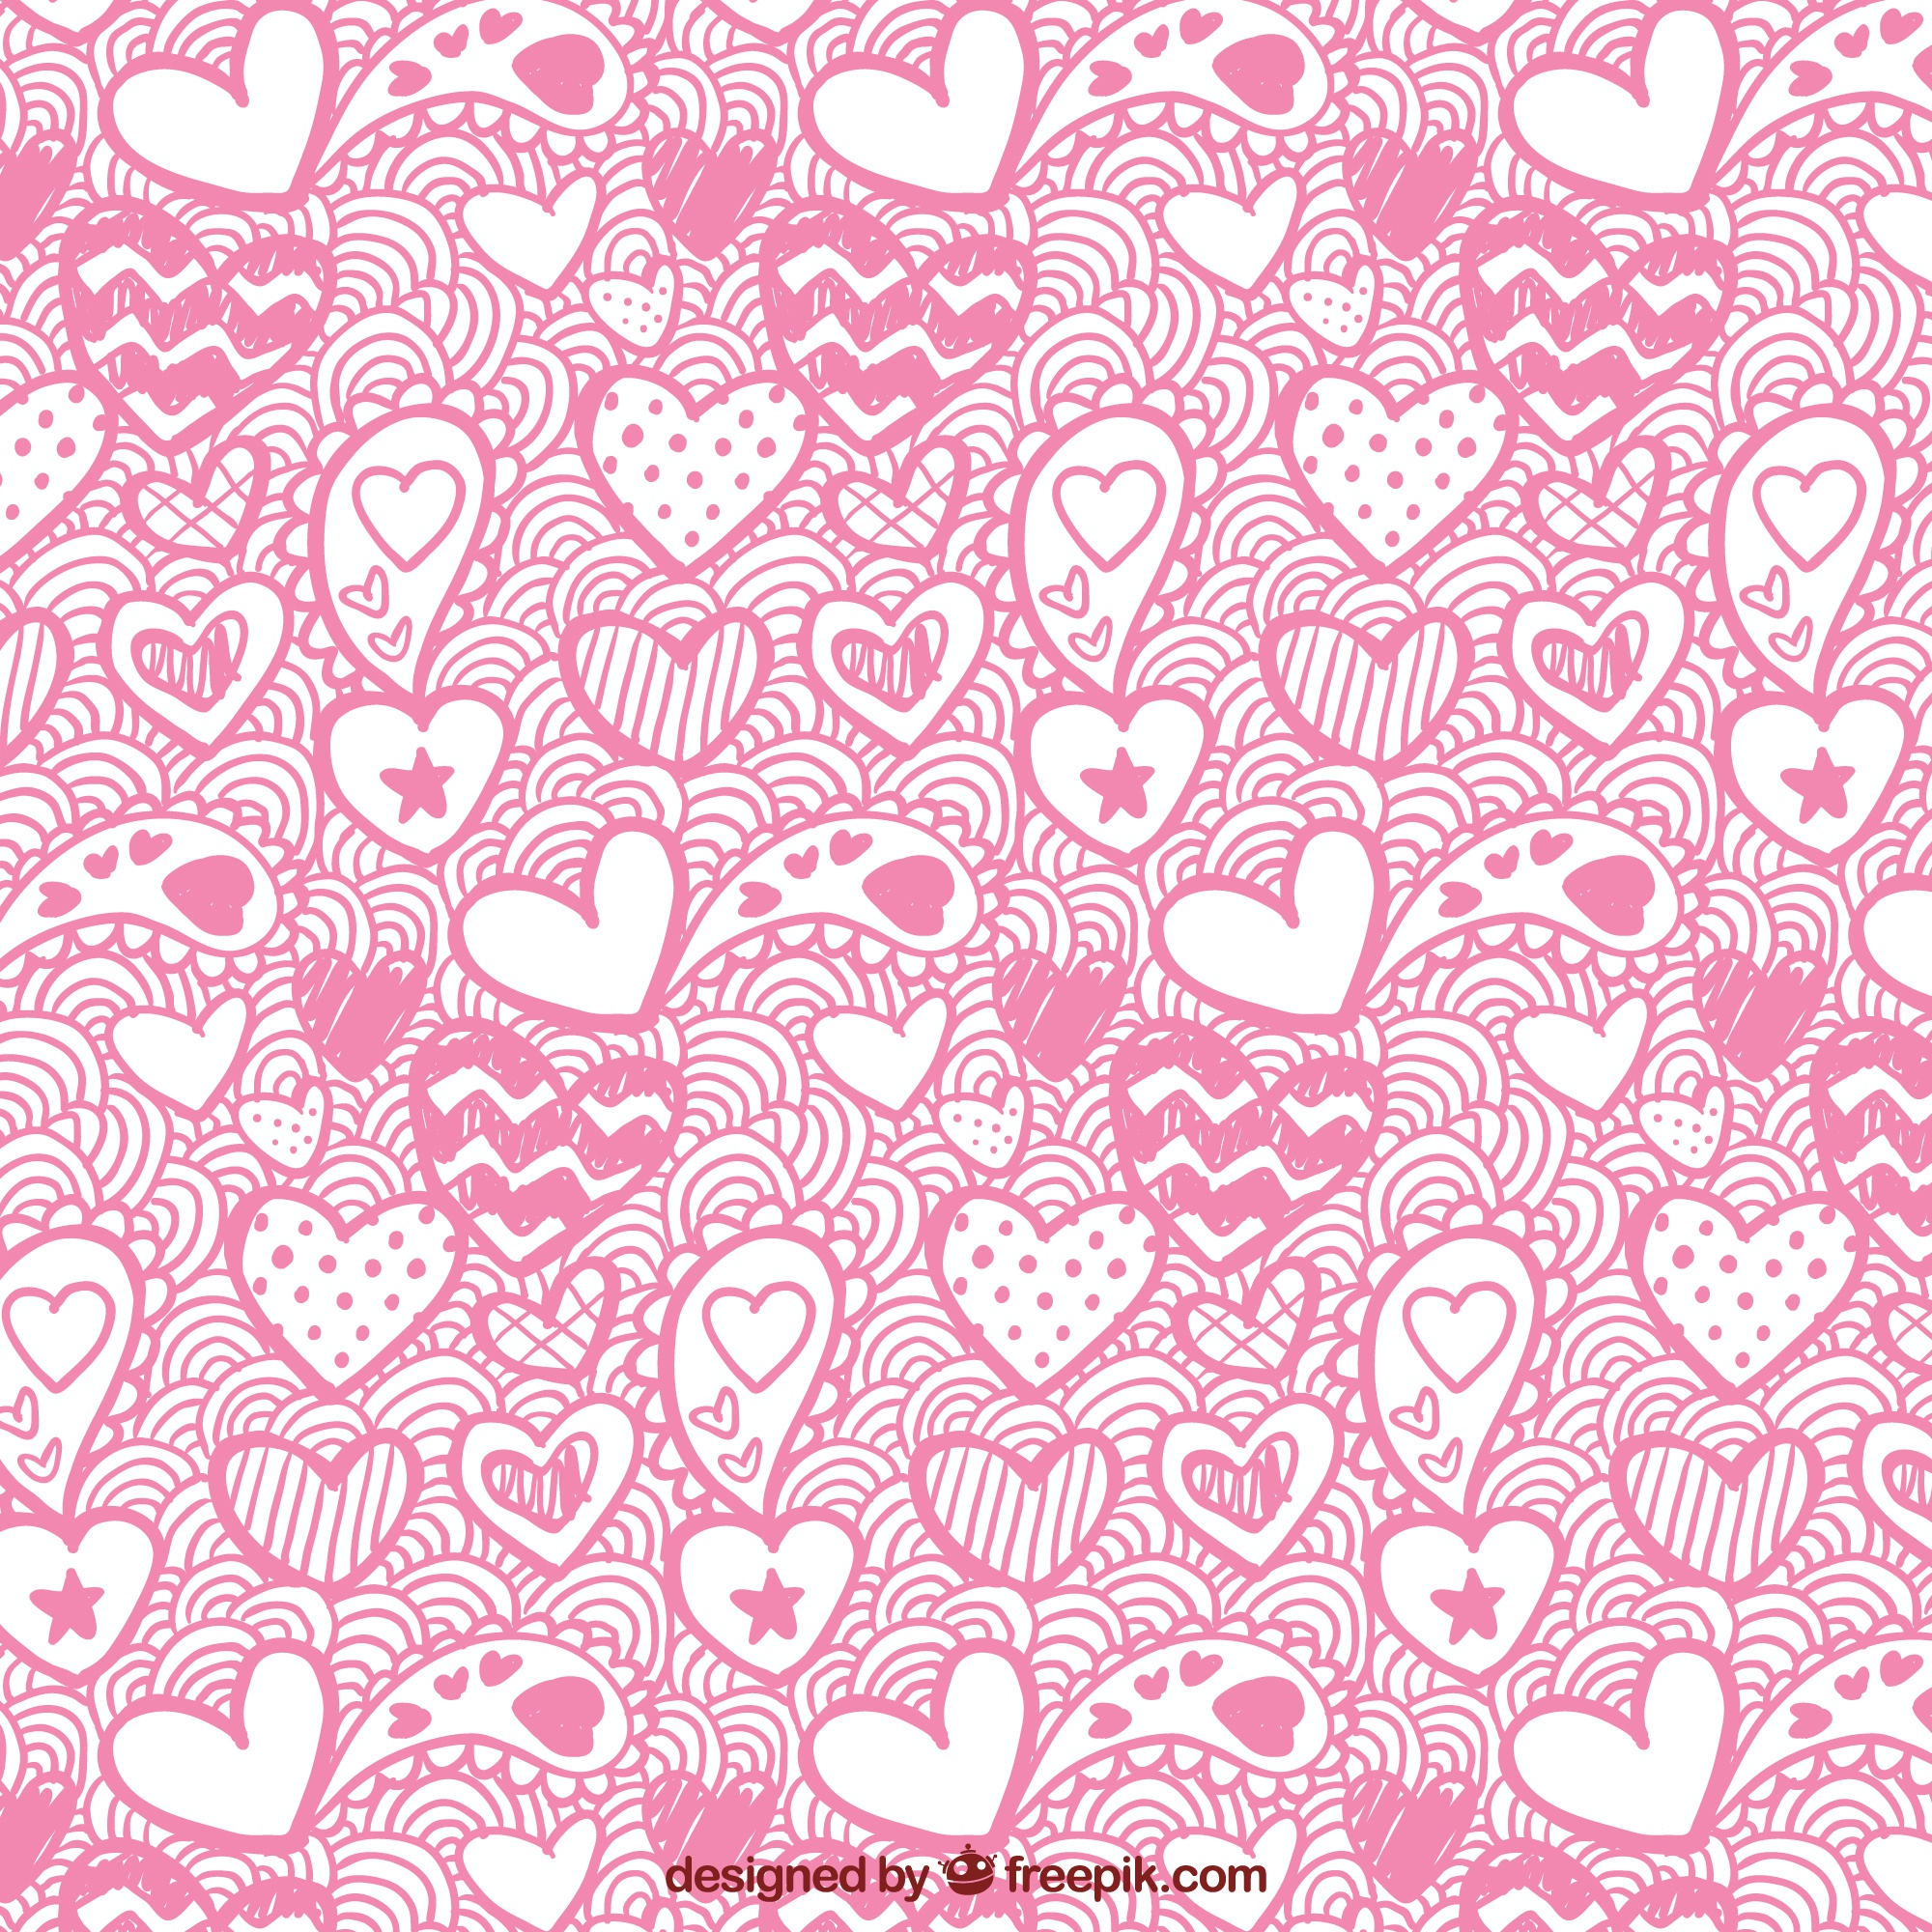 Valentine's day pattern of hand-drawn hearts